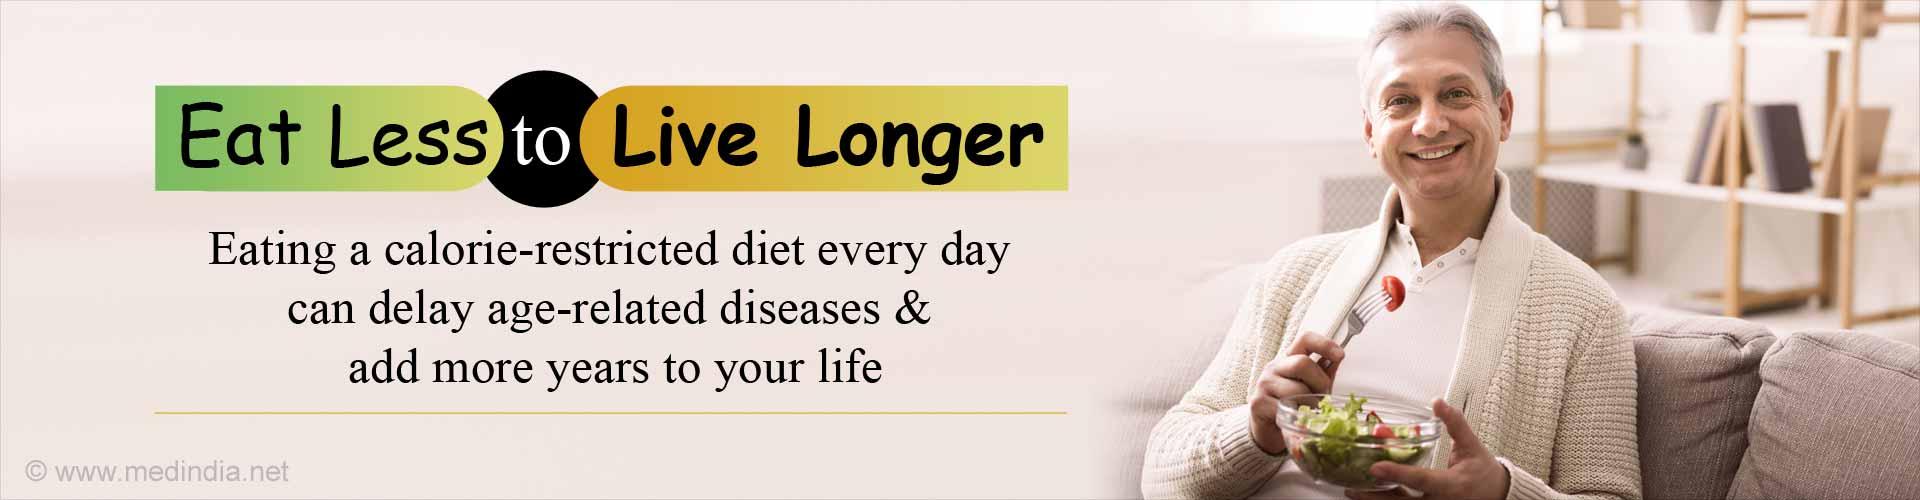 Eat Less to Live Longer. Eating a calorie-restricted diet every day can delay age-related diseases and add more years to your life.